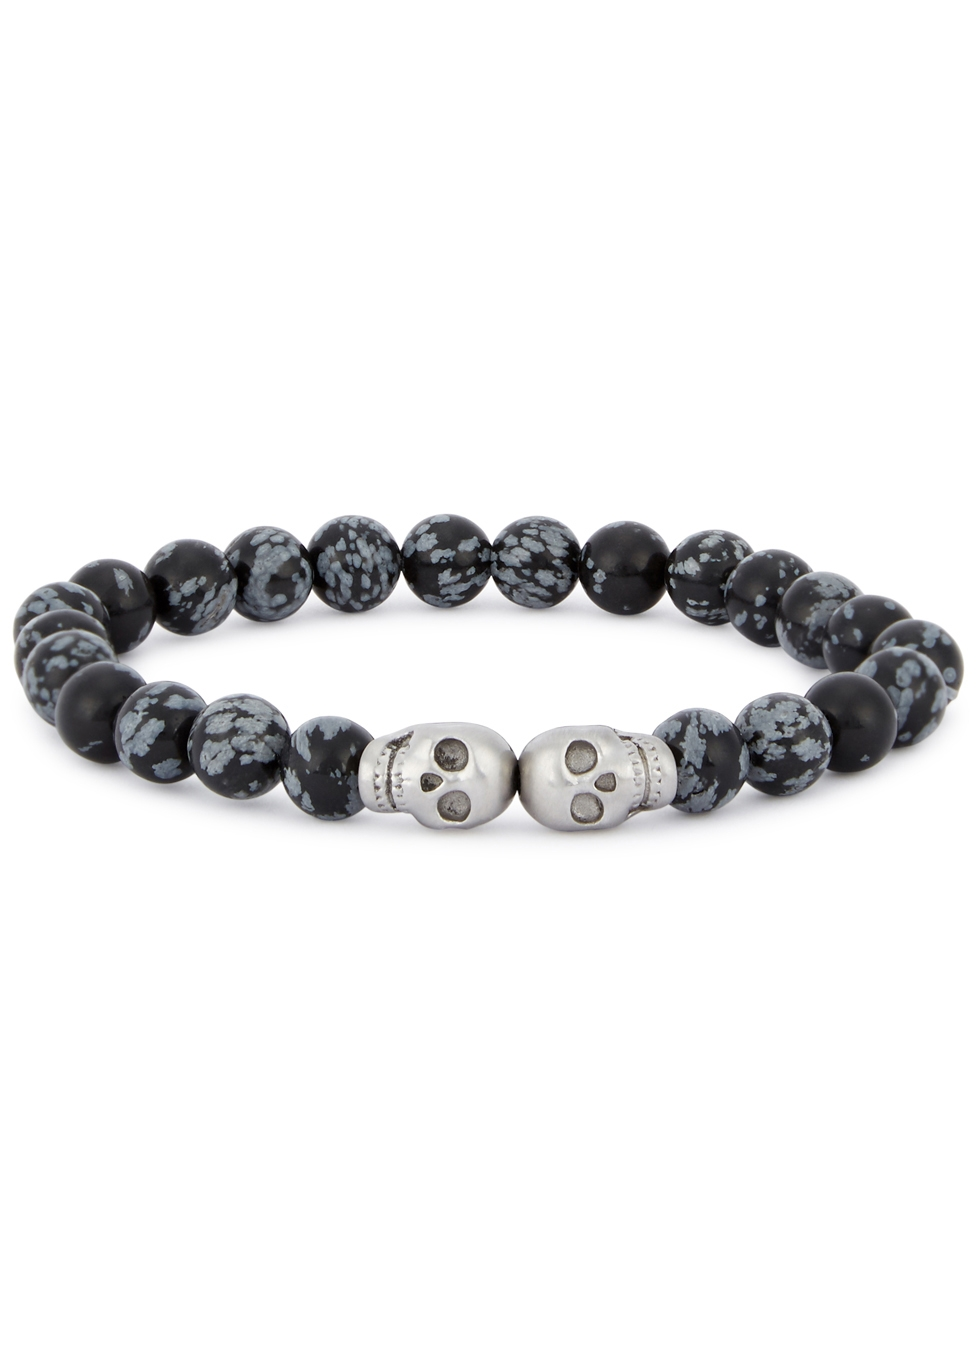 SIMON CARTER OBSIDIAN BEADED SKULL BRACELET